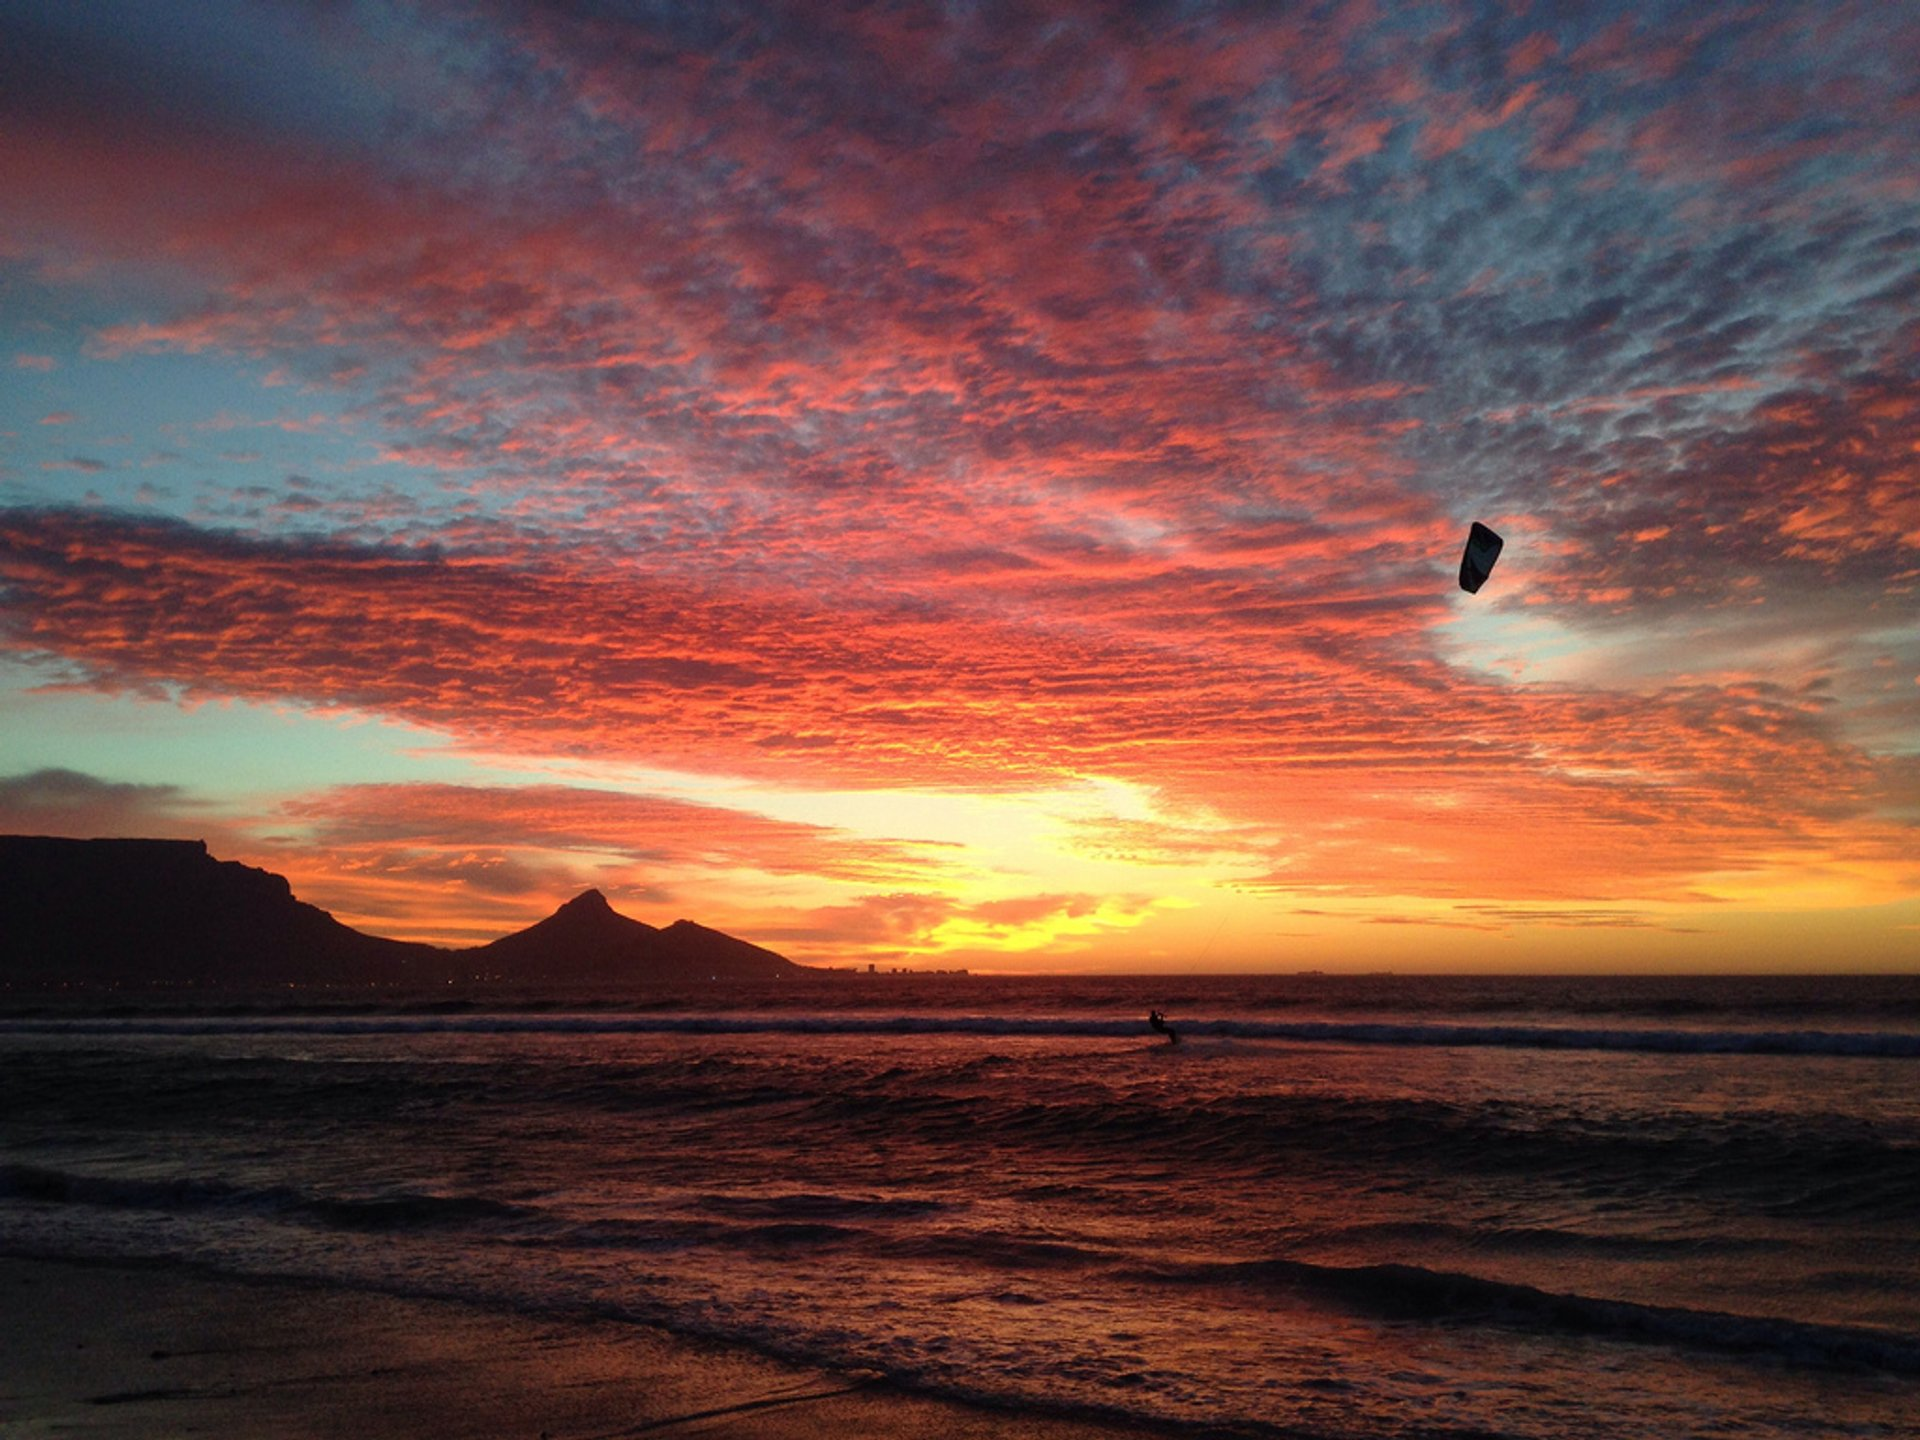 Sunset over Table Bay with kite boarders in the distance. Sunset Beach, Cape Town 2020